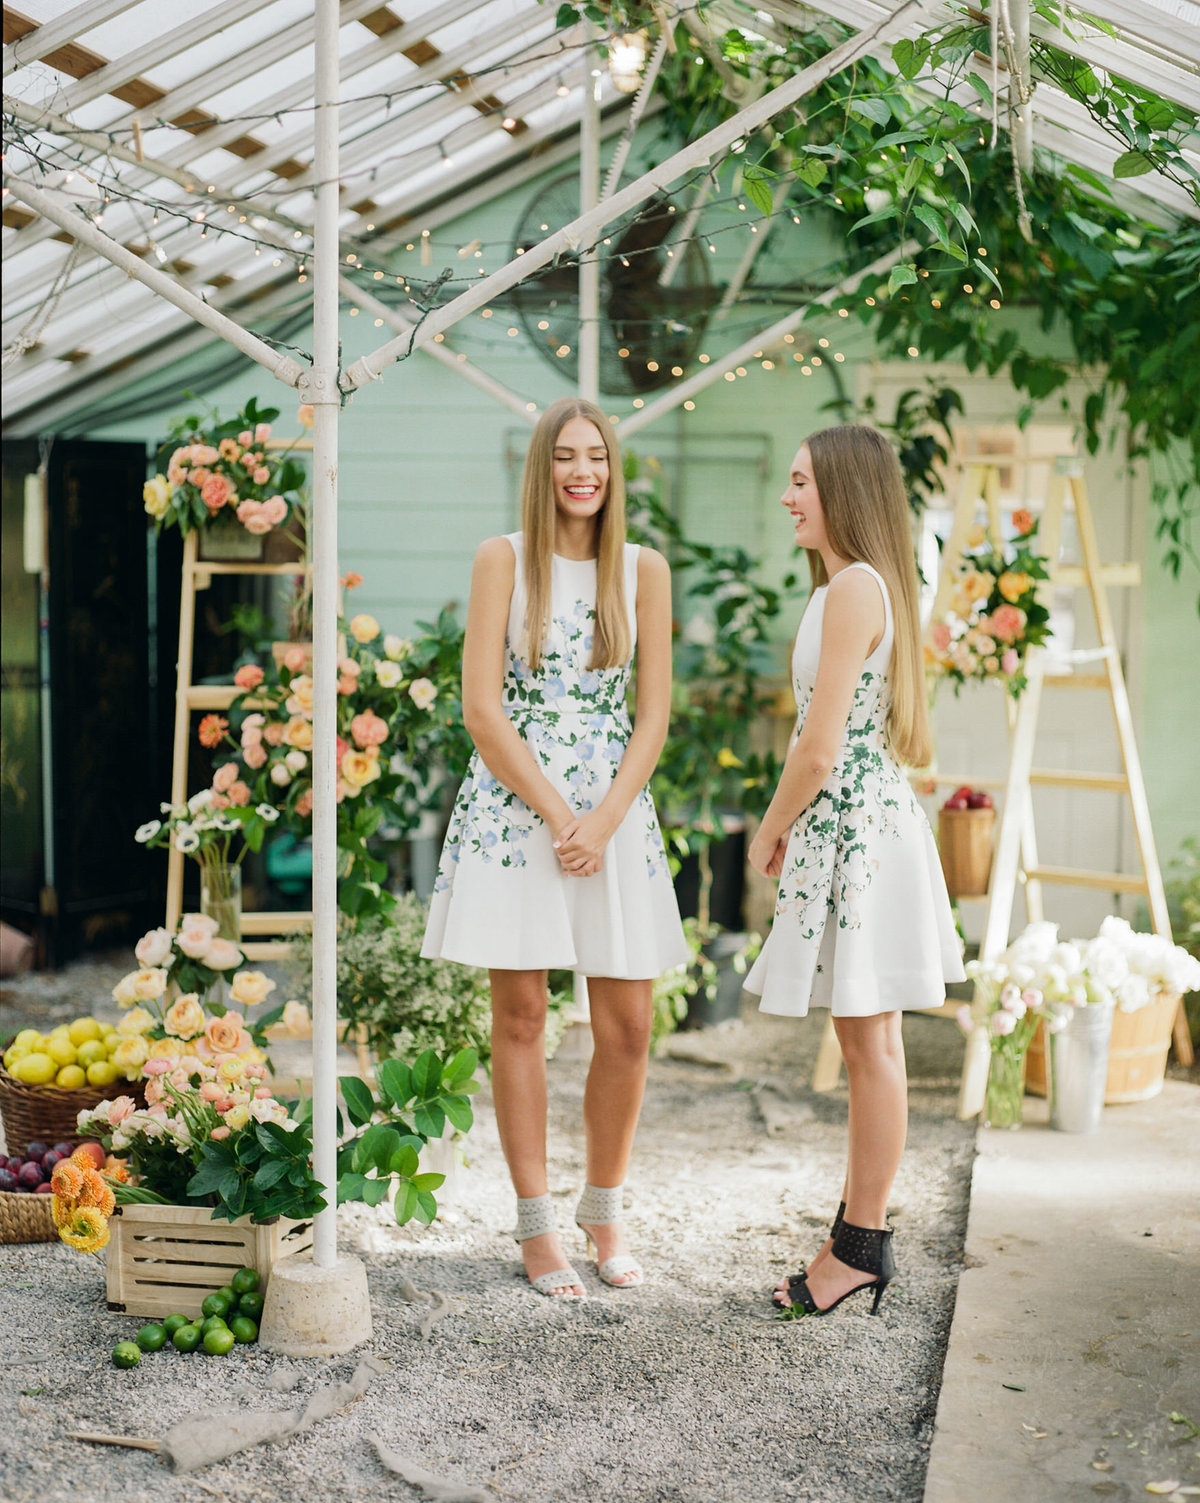 WhimsicalGreenhouseFashion-0011-Shieldmaidens_Film_042-474490190005